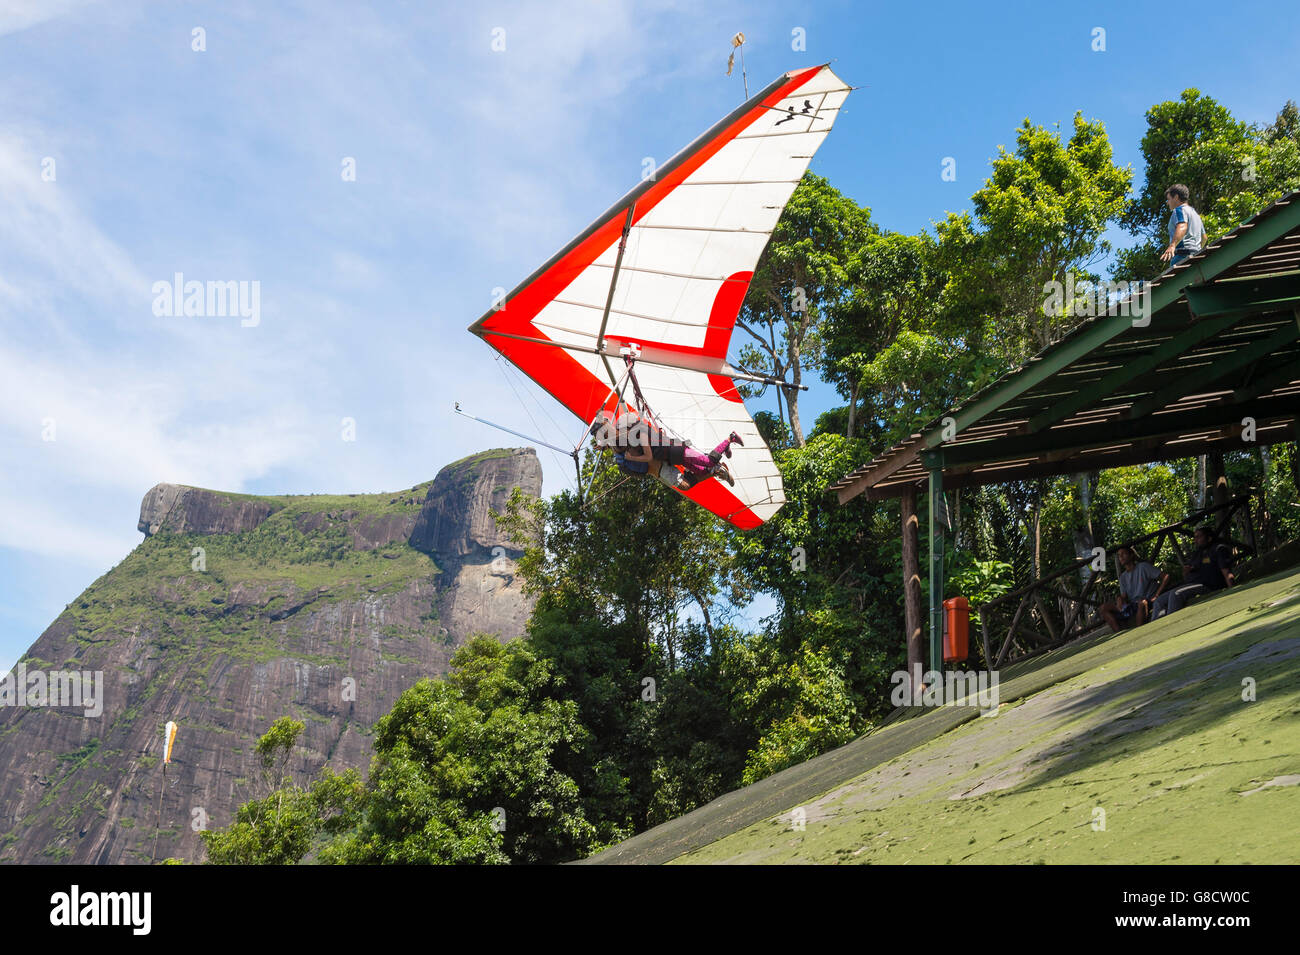 RIO DE JANEIRO - MARCH 22, 2016: A hang gliding instructor takes off with a passenger from Pedra Bonita, in the - Stock Image